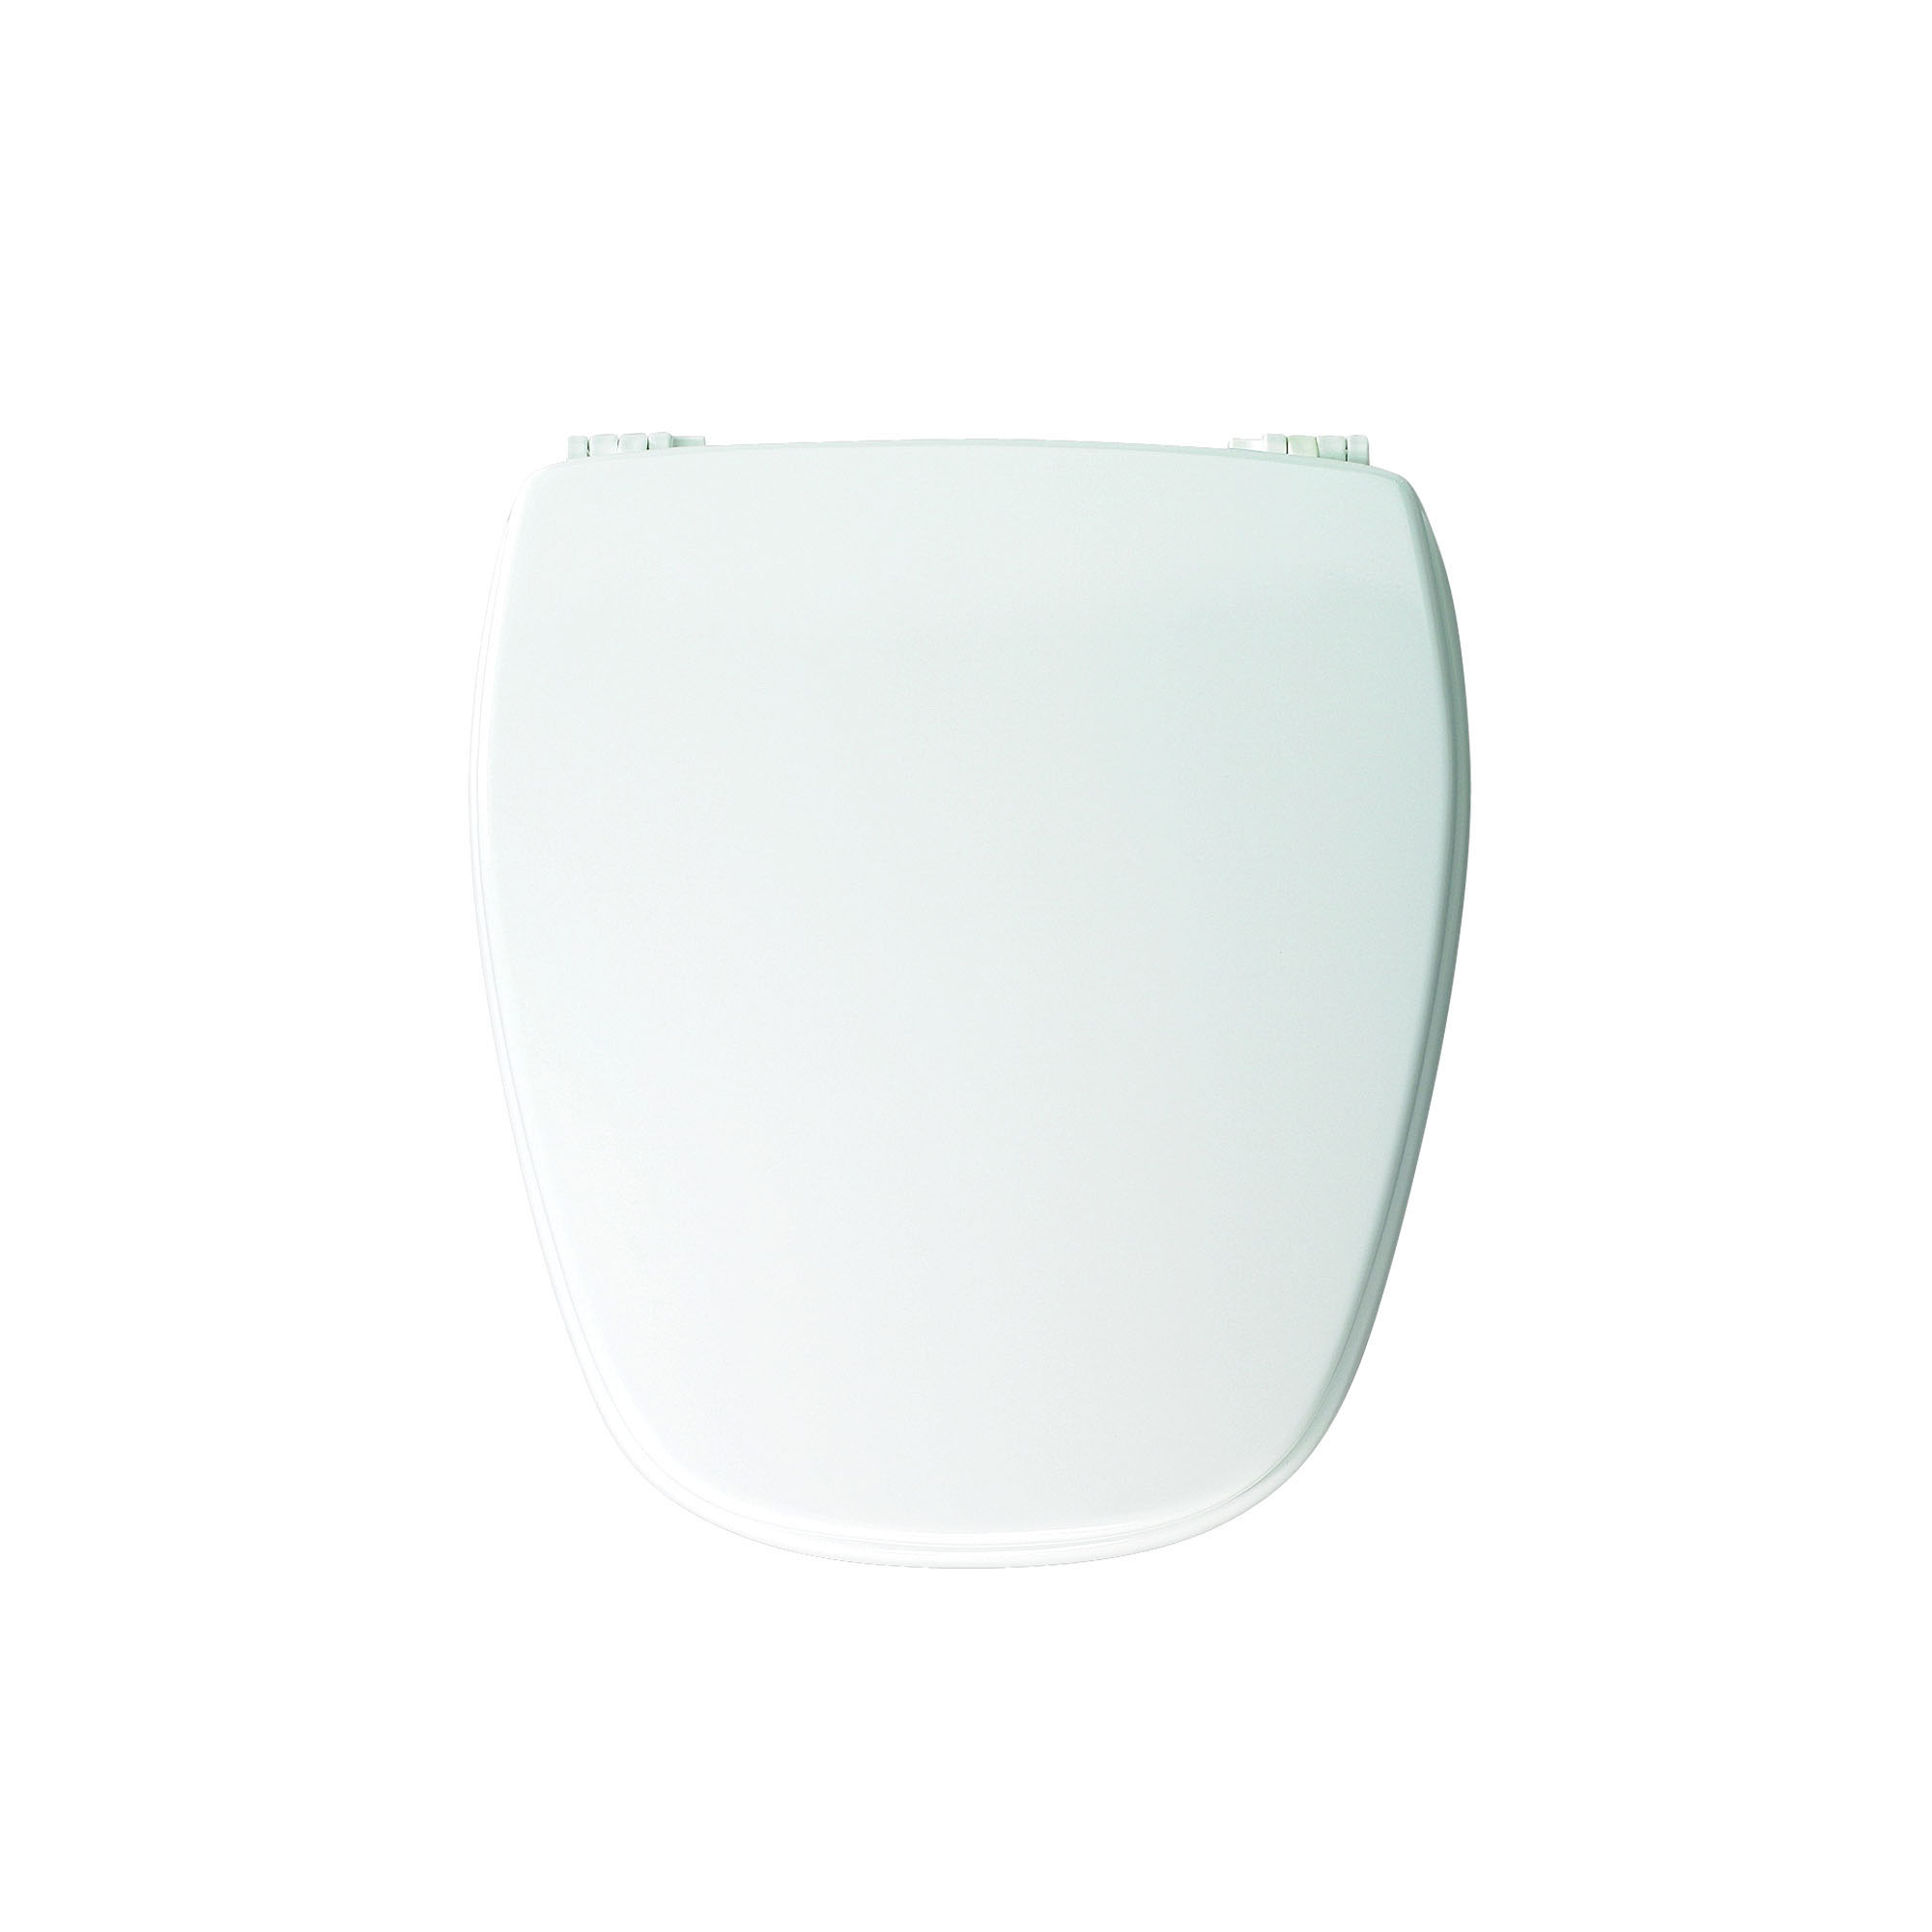 Church® NW209E10 000 Toilet Seat With Cover, Round Bowl, Closed Front, Wood, Adjustable Hinge, White, Domestic